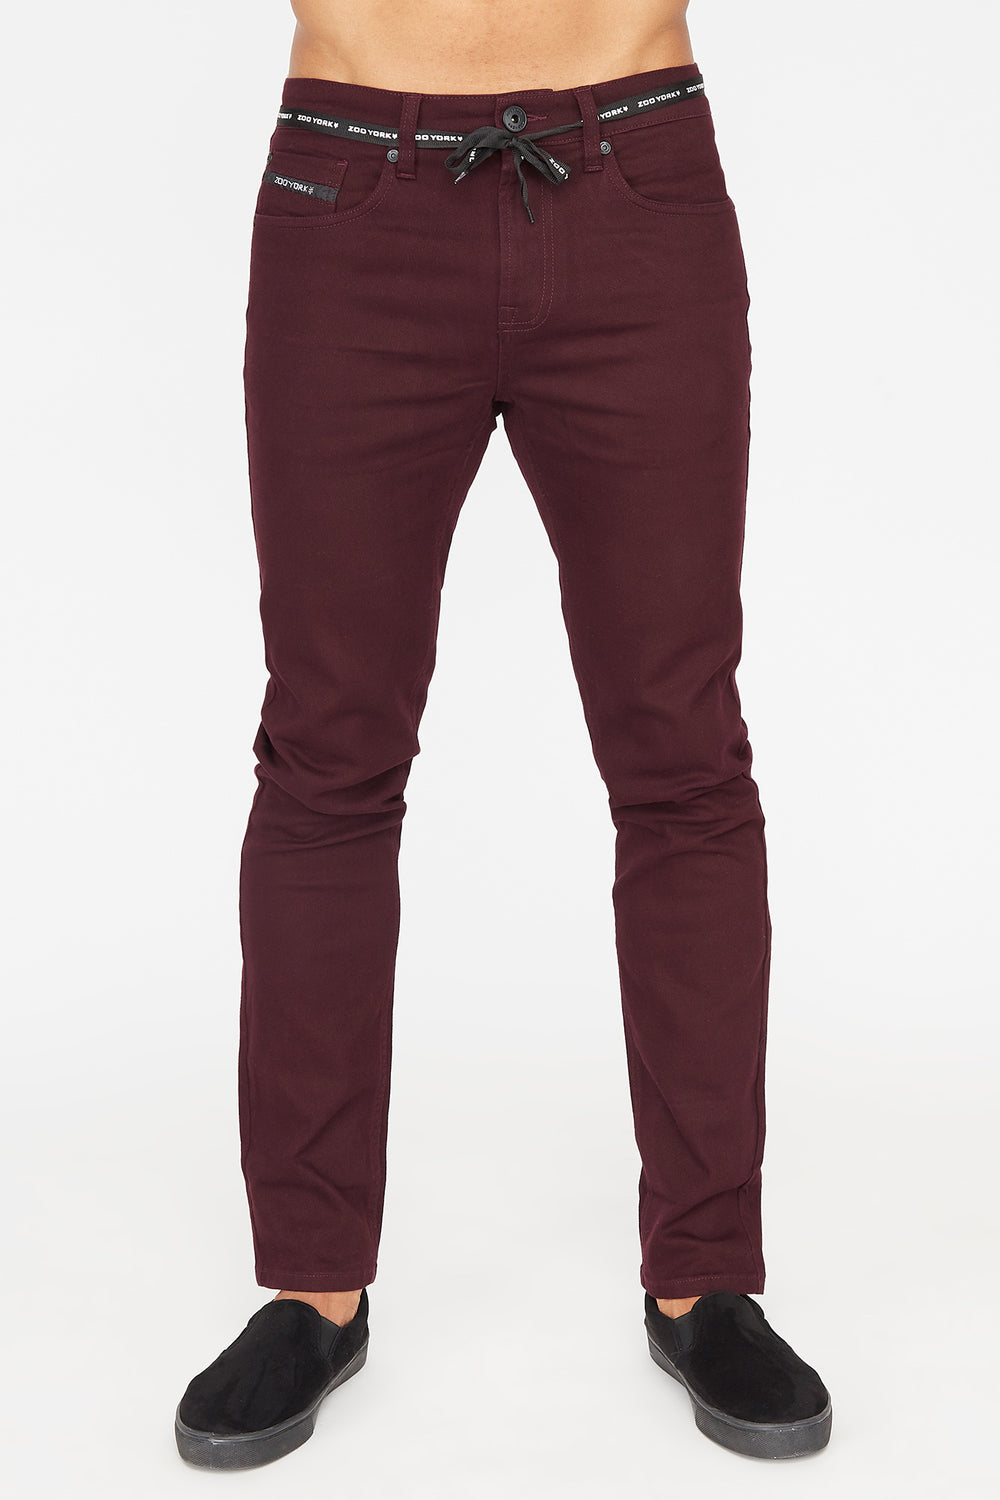 Zoo York Mens Skinny Jeans Burgundy